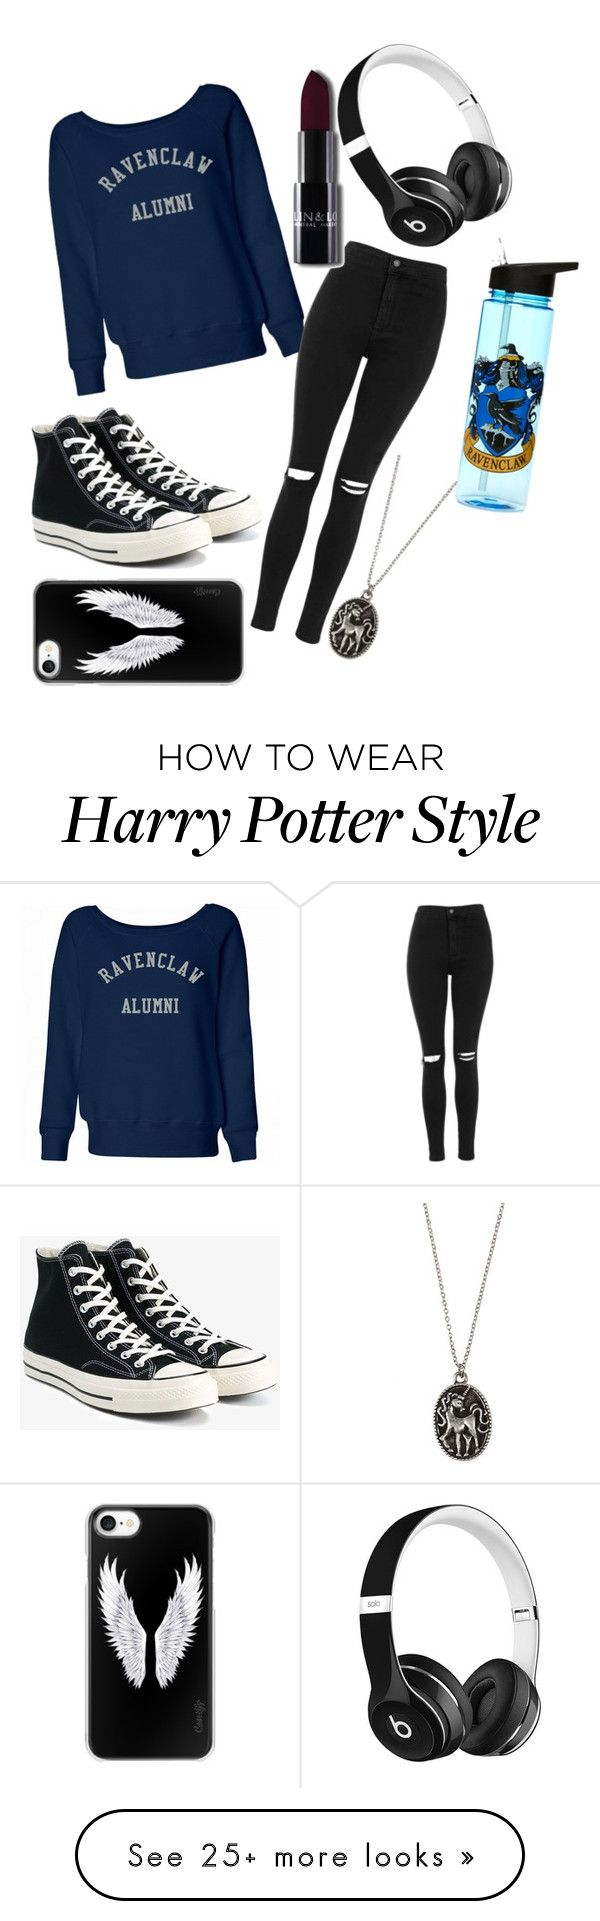 """""""untitled  #18"""" by luna-e on Polyvore featuring Beats by Dr. Dre, Topshop, Converse and Casetify"""